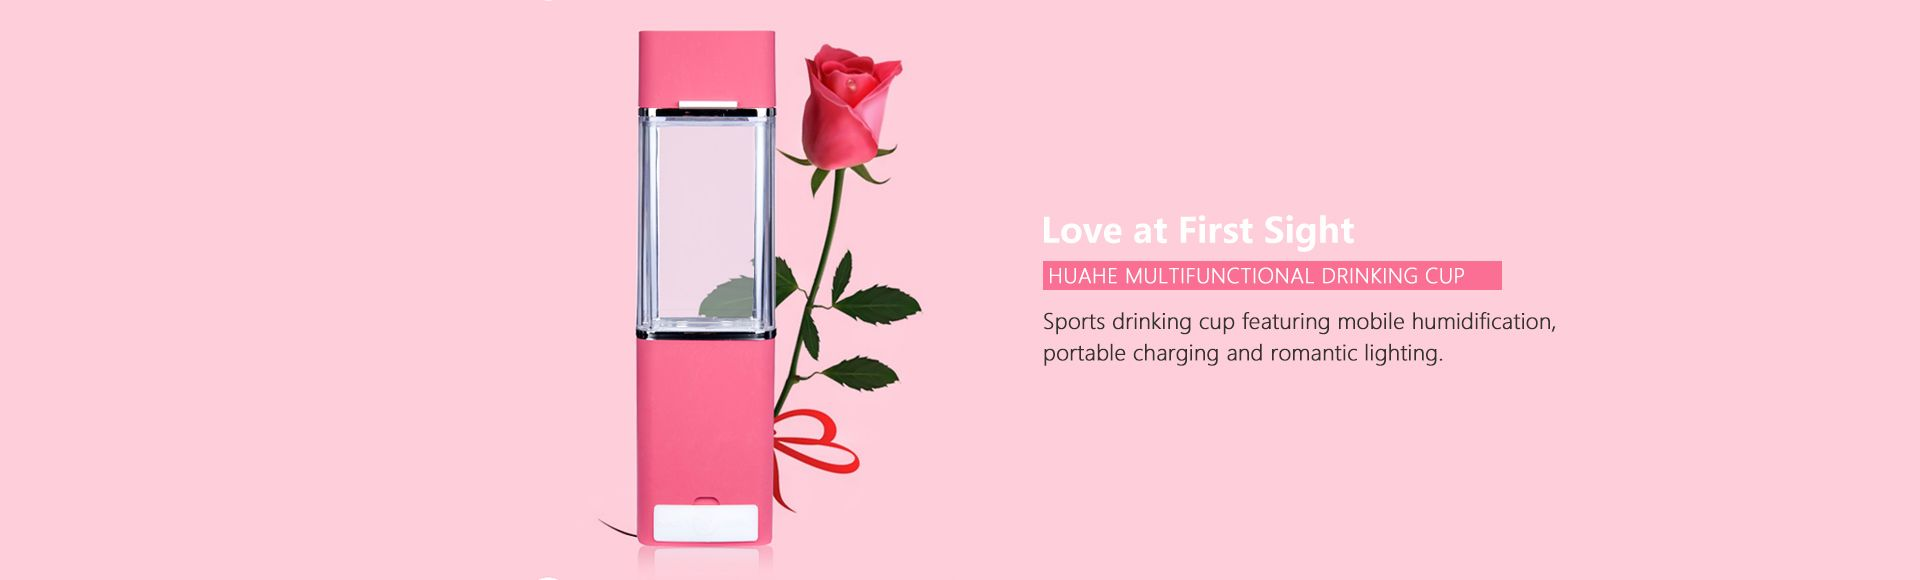 HUAHE Multifunctional Drinking Cup - Love at first sight Sports drinking cup featuring mobile humidification portable charging and romantic lighting